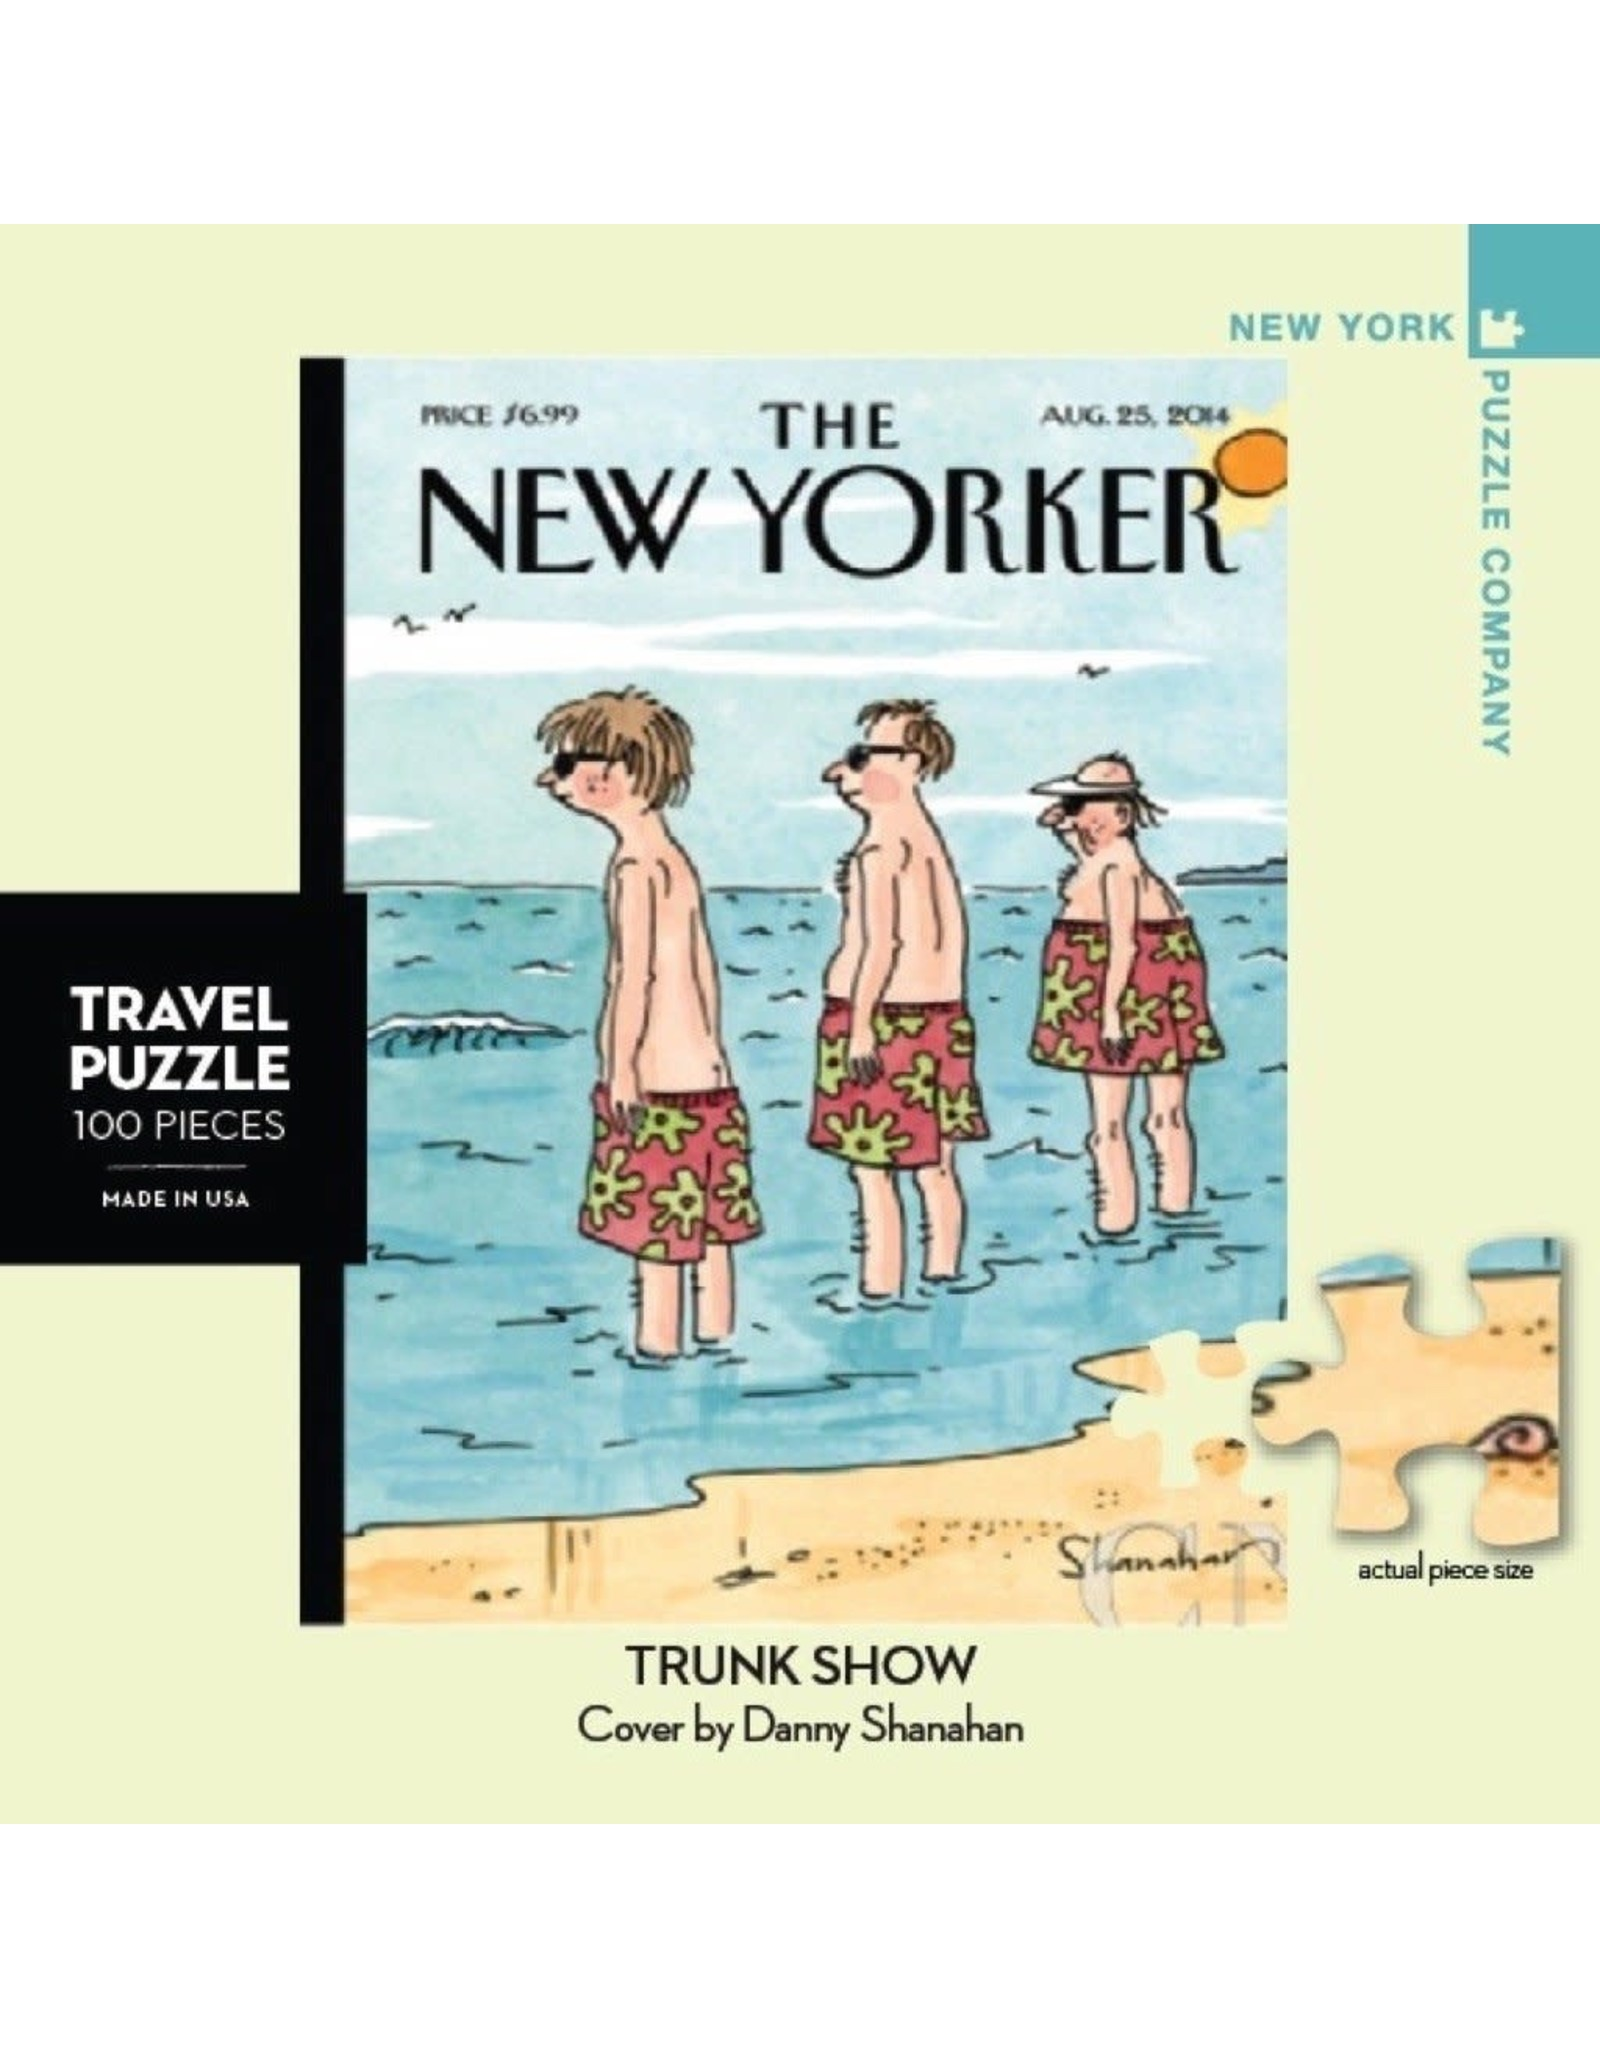 New Yorker Mini Puzzle - Trunk Show 100 Pieces